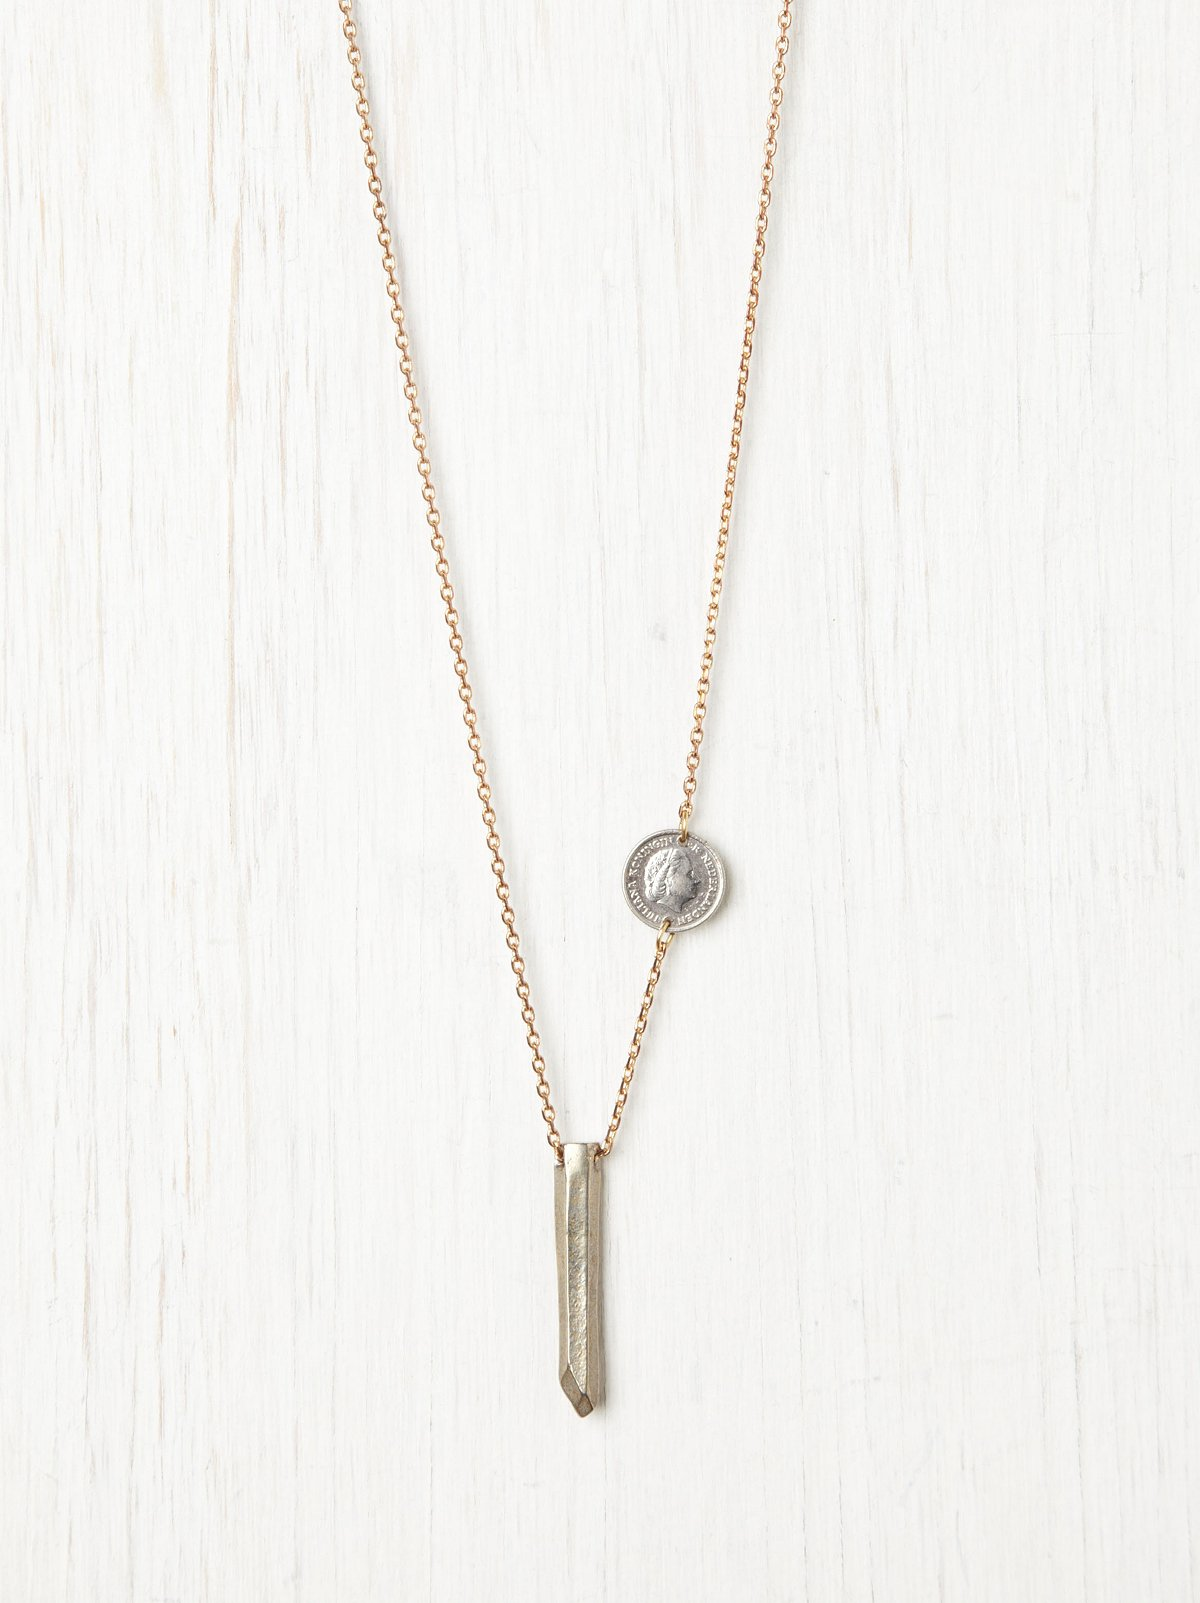 Coin and Peg Pendant